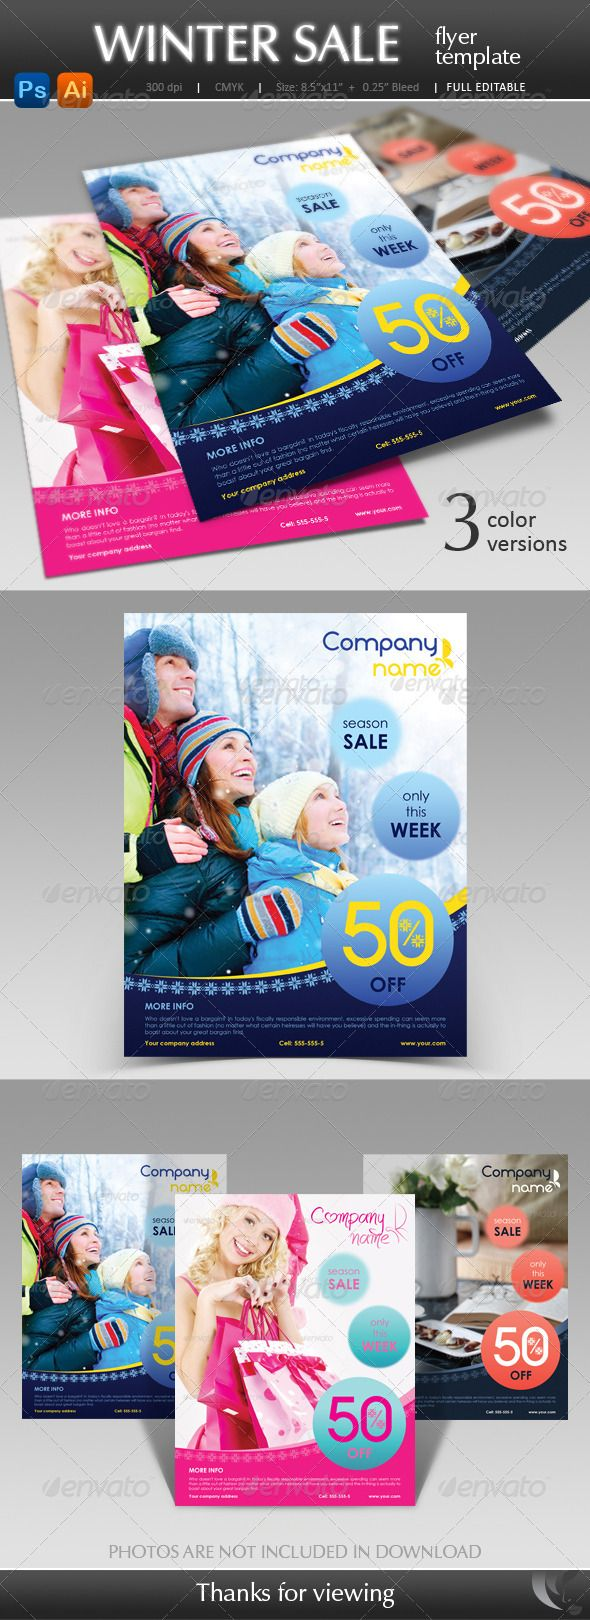 best images about print templates fonts flyer winter flyer template